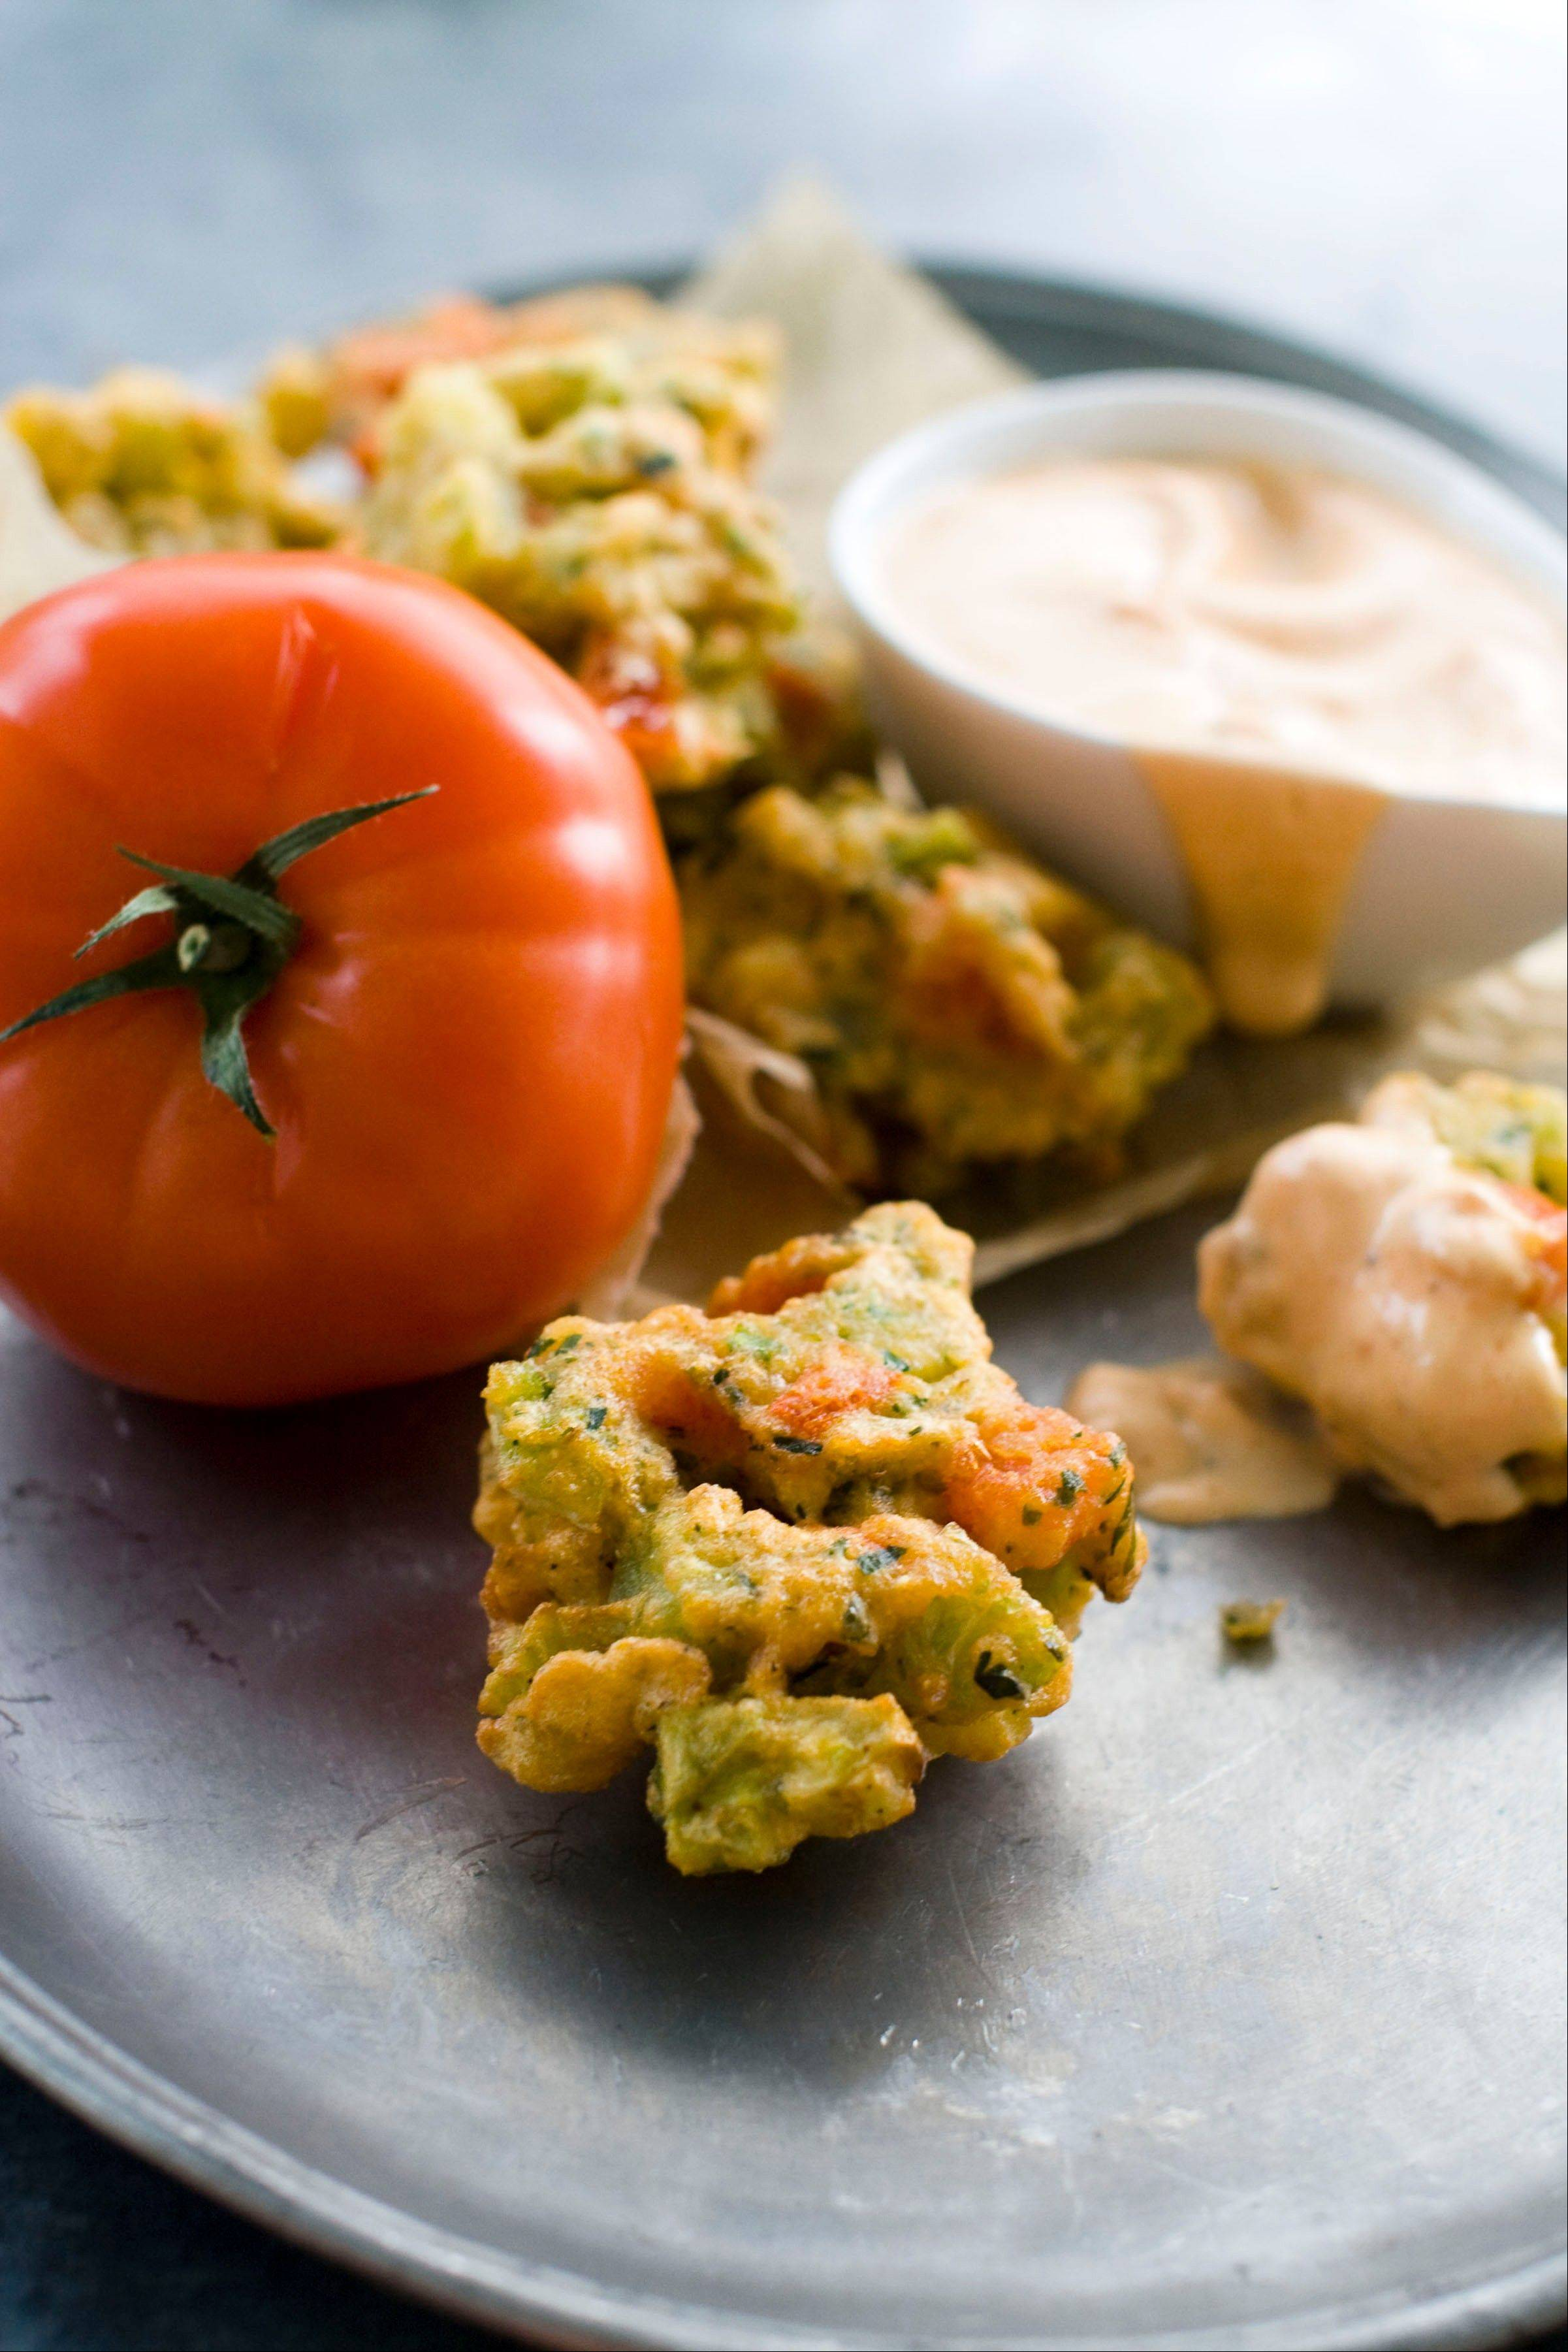 Serve these tomato confetti fritters with prepared mayonnaise.